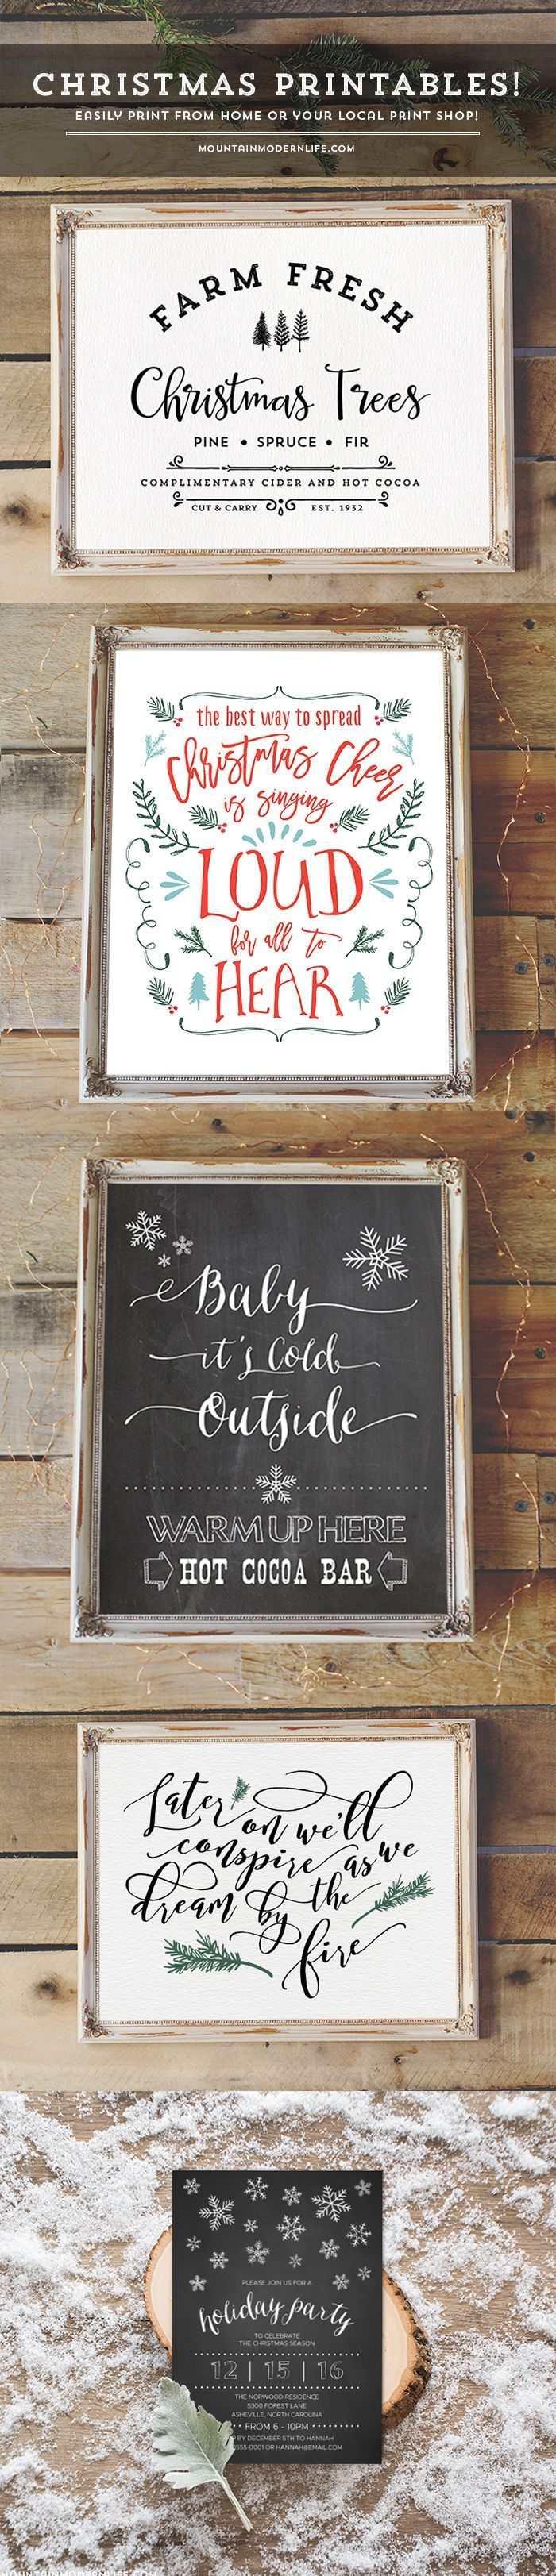 Looking for easy ways to spruce up your home for the holidays? Check out these Christmas printables you can instantly download and print! MountainModernLife.com